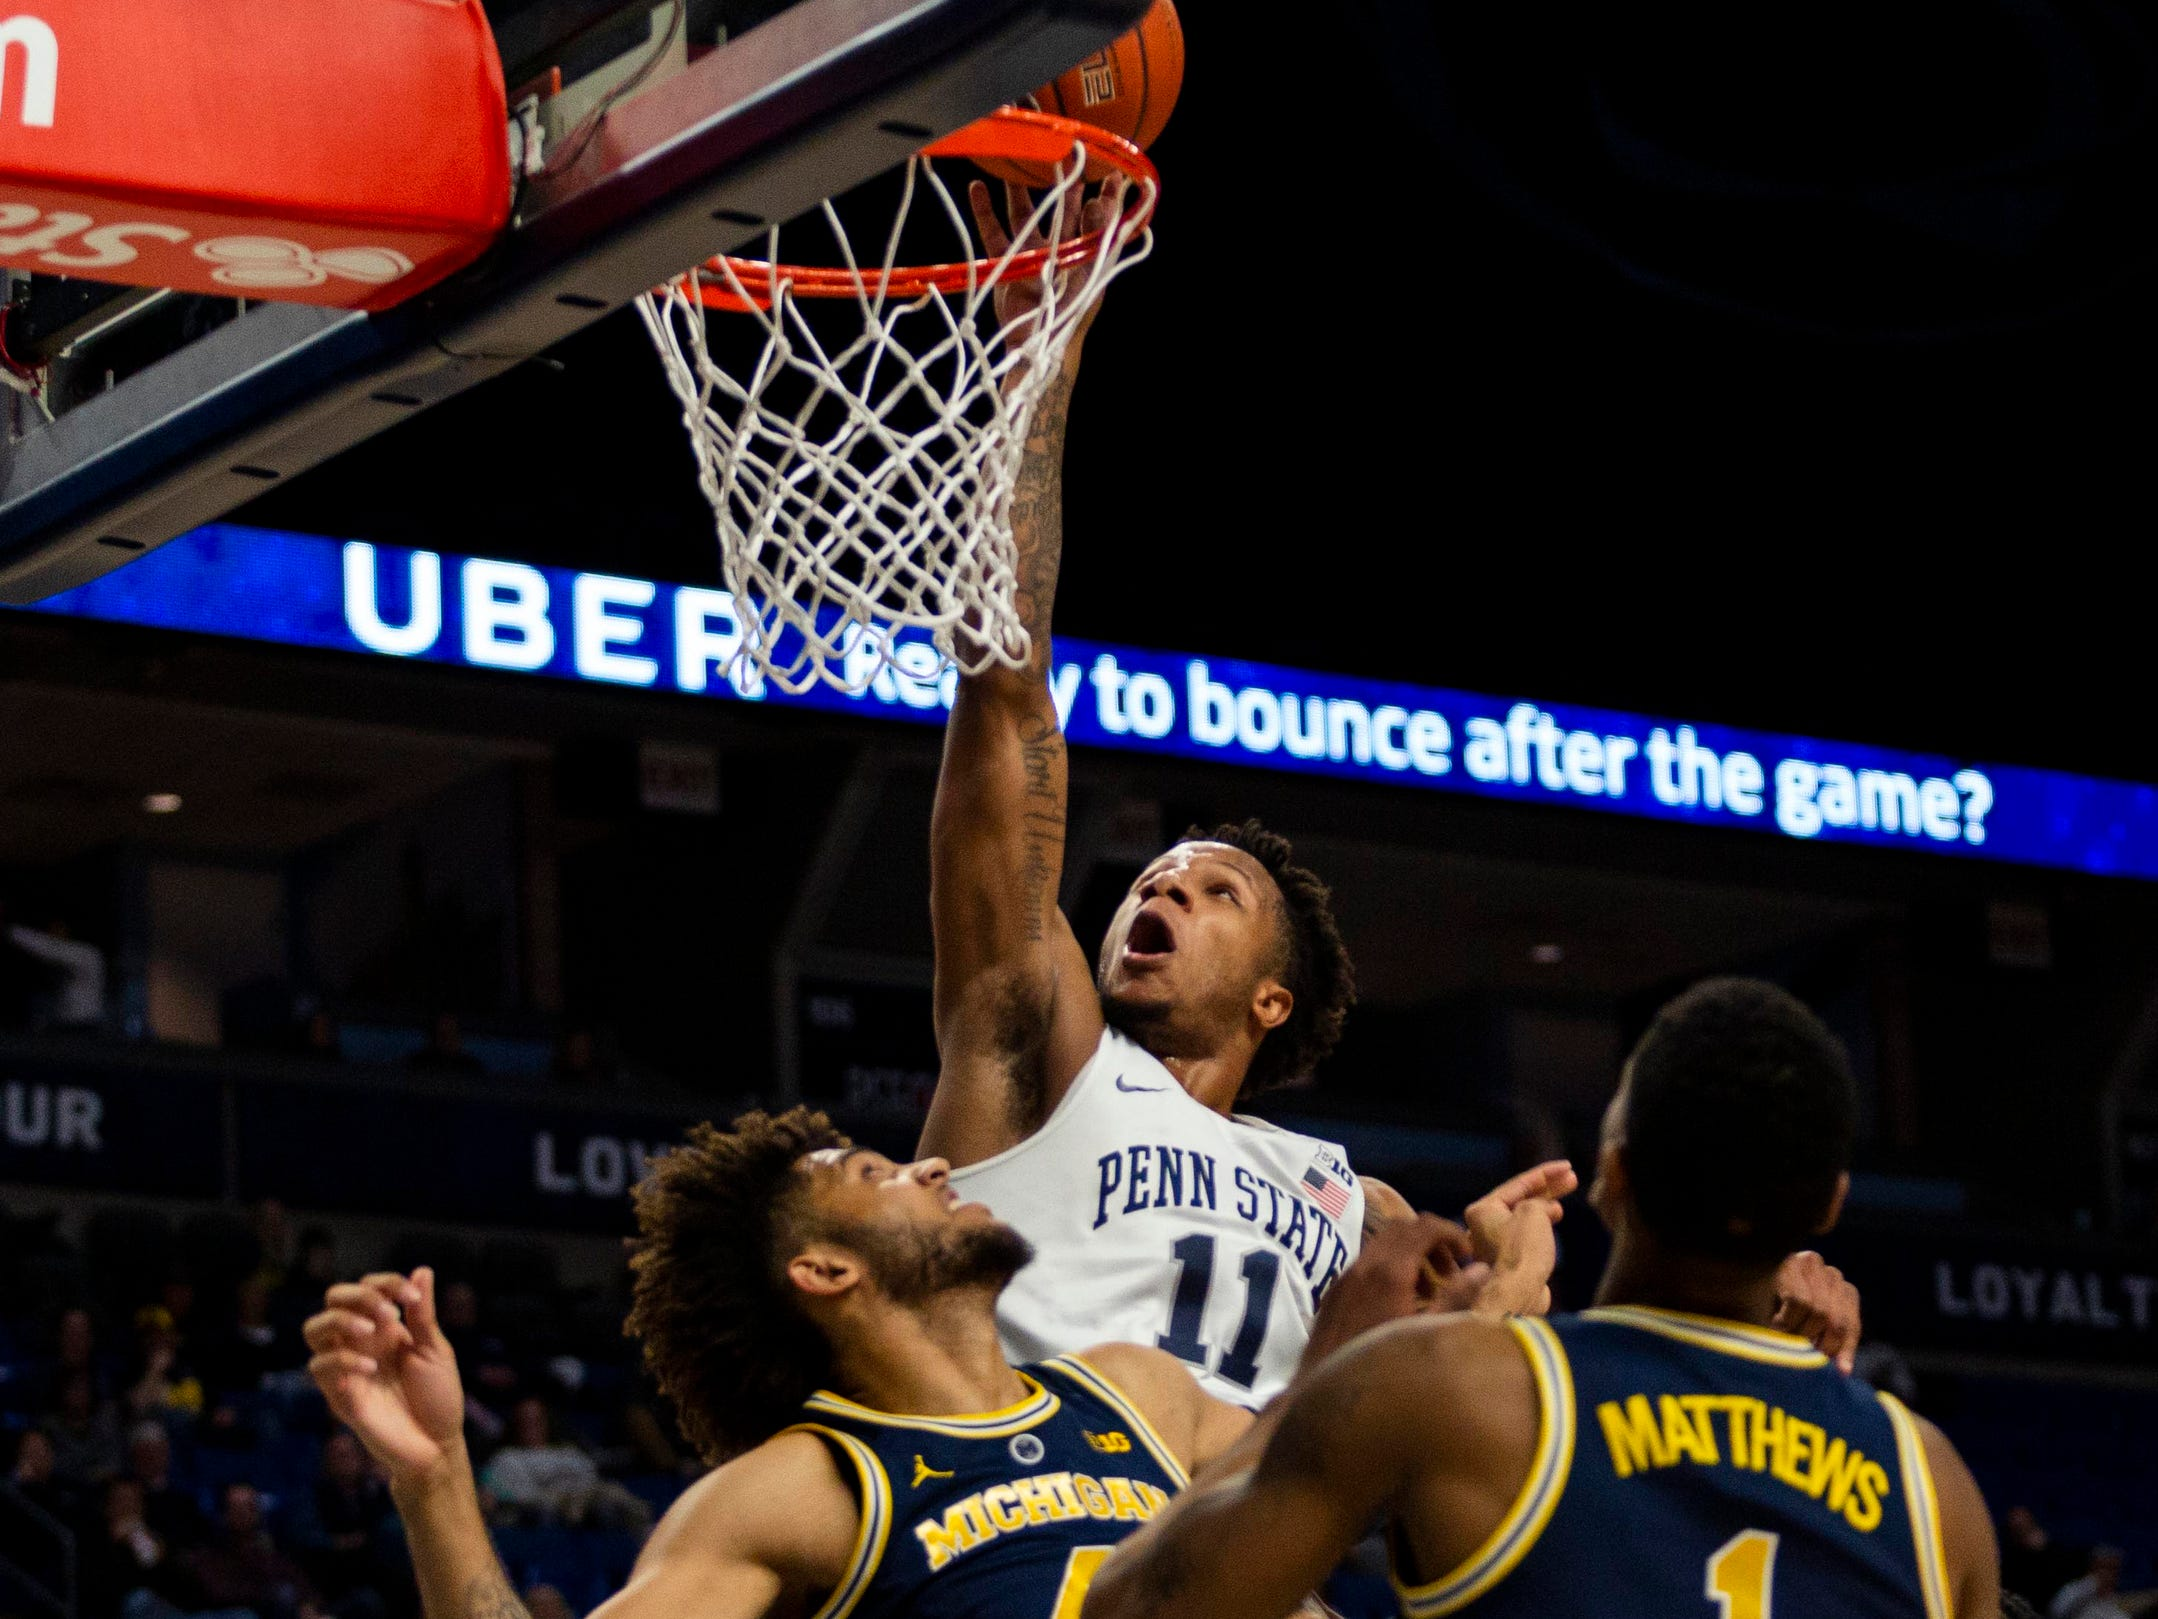 Penn State's Lamar Stevens shoots over Michigan's Isaiah Livers during the first half Tuesday, Feb. 12, 2019, in State College, Pa.